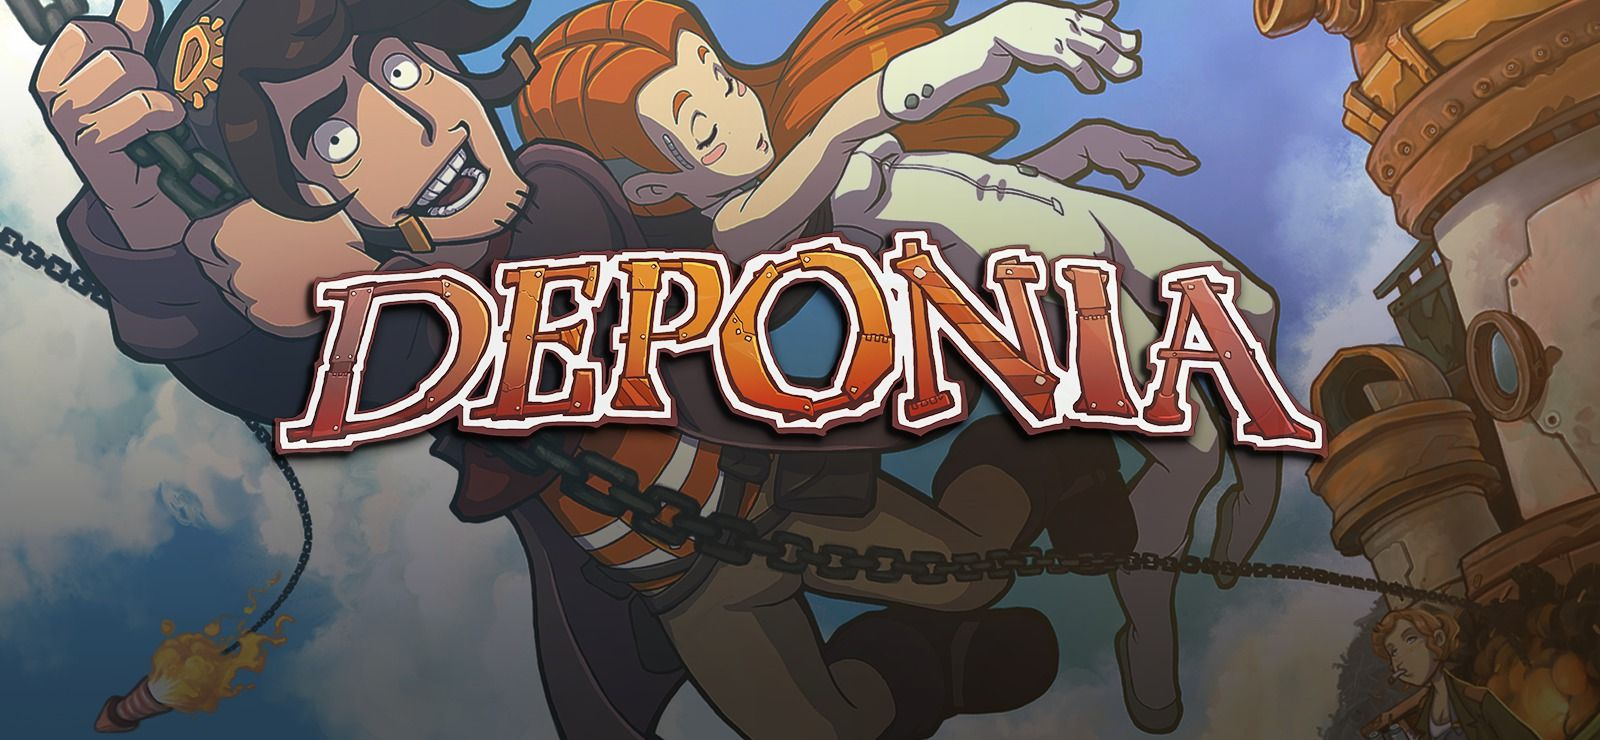 Deponia on Neon signs, Games, News games